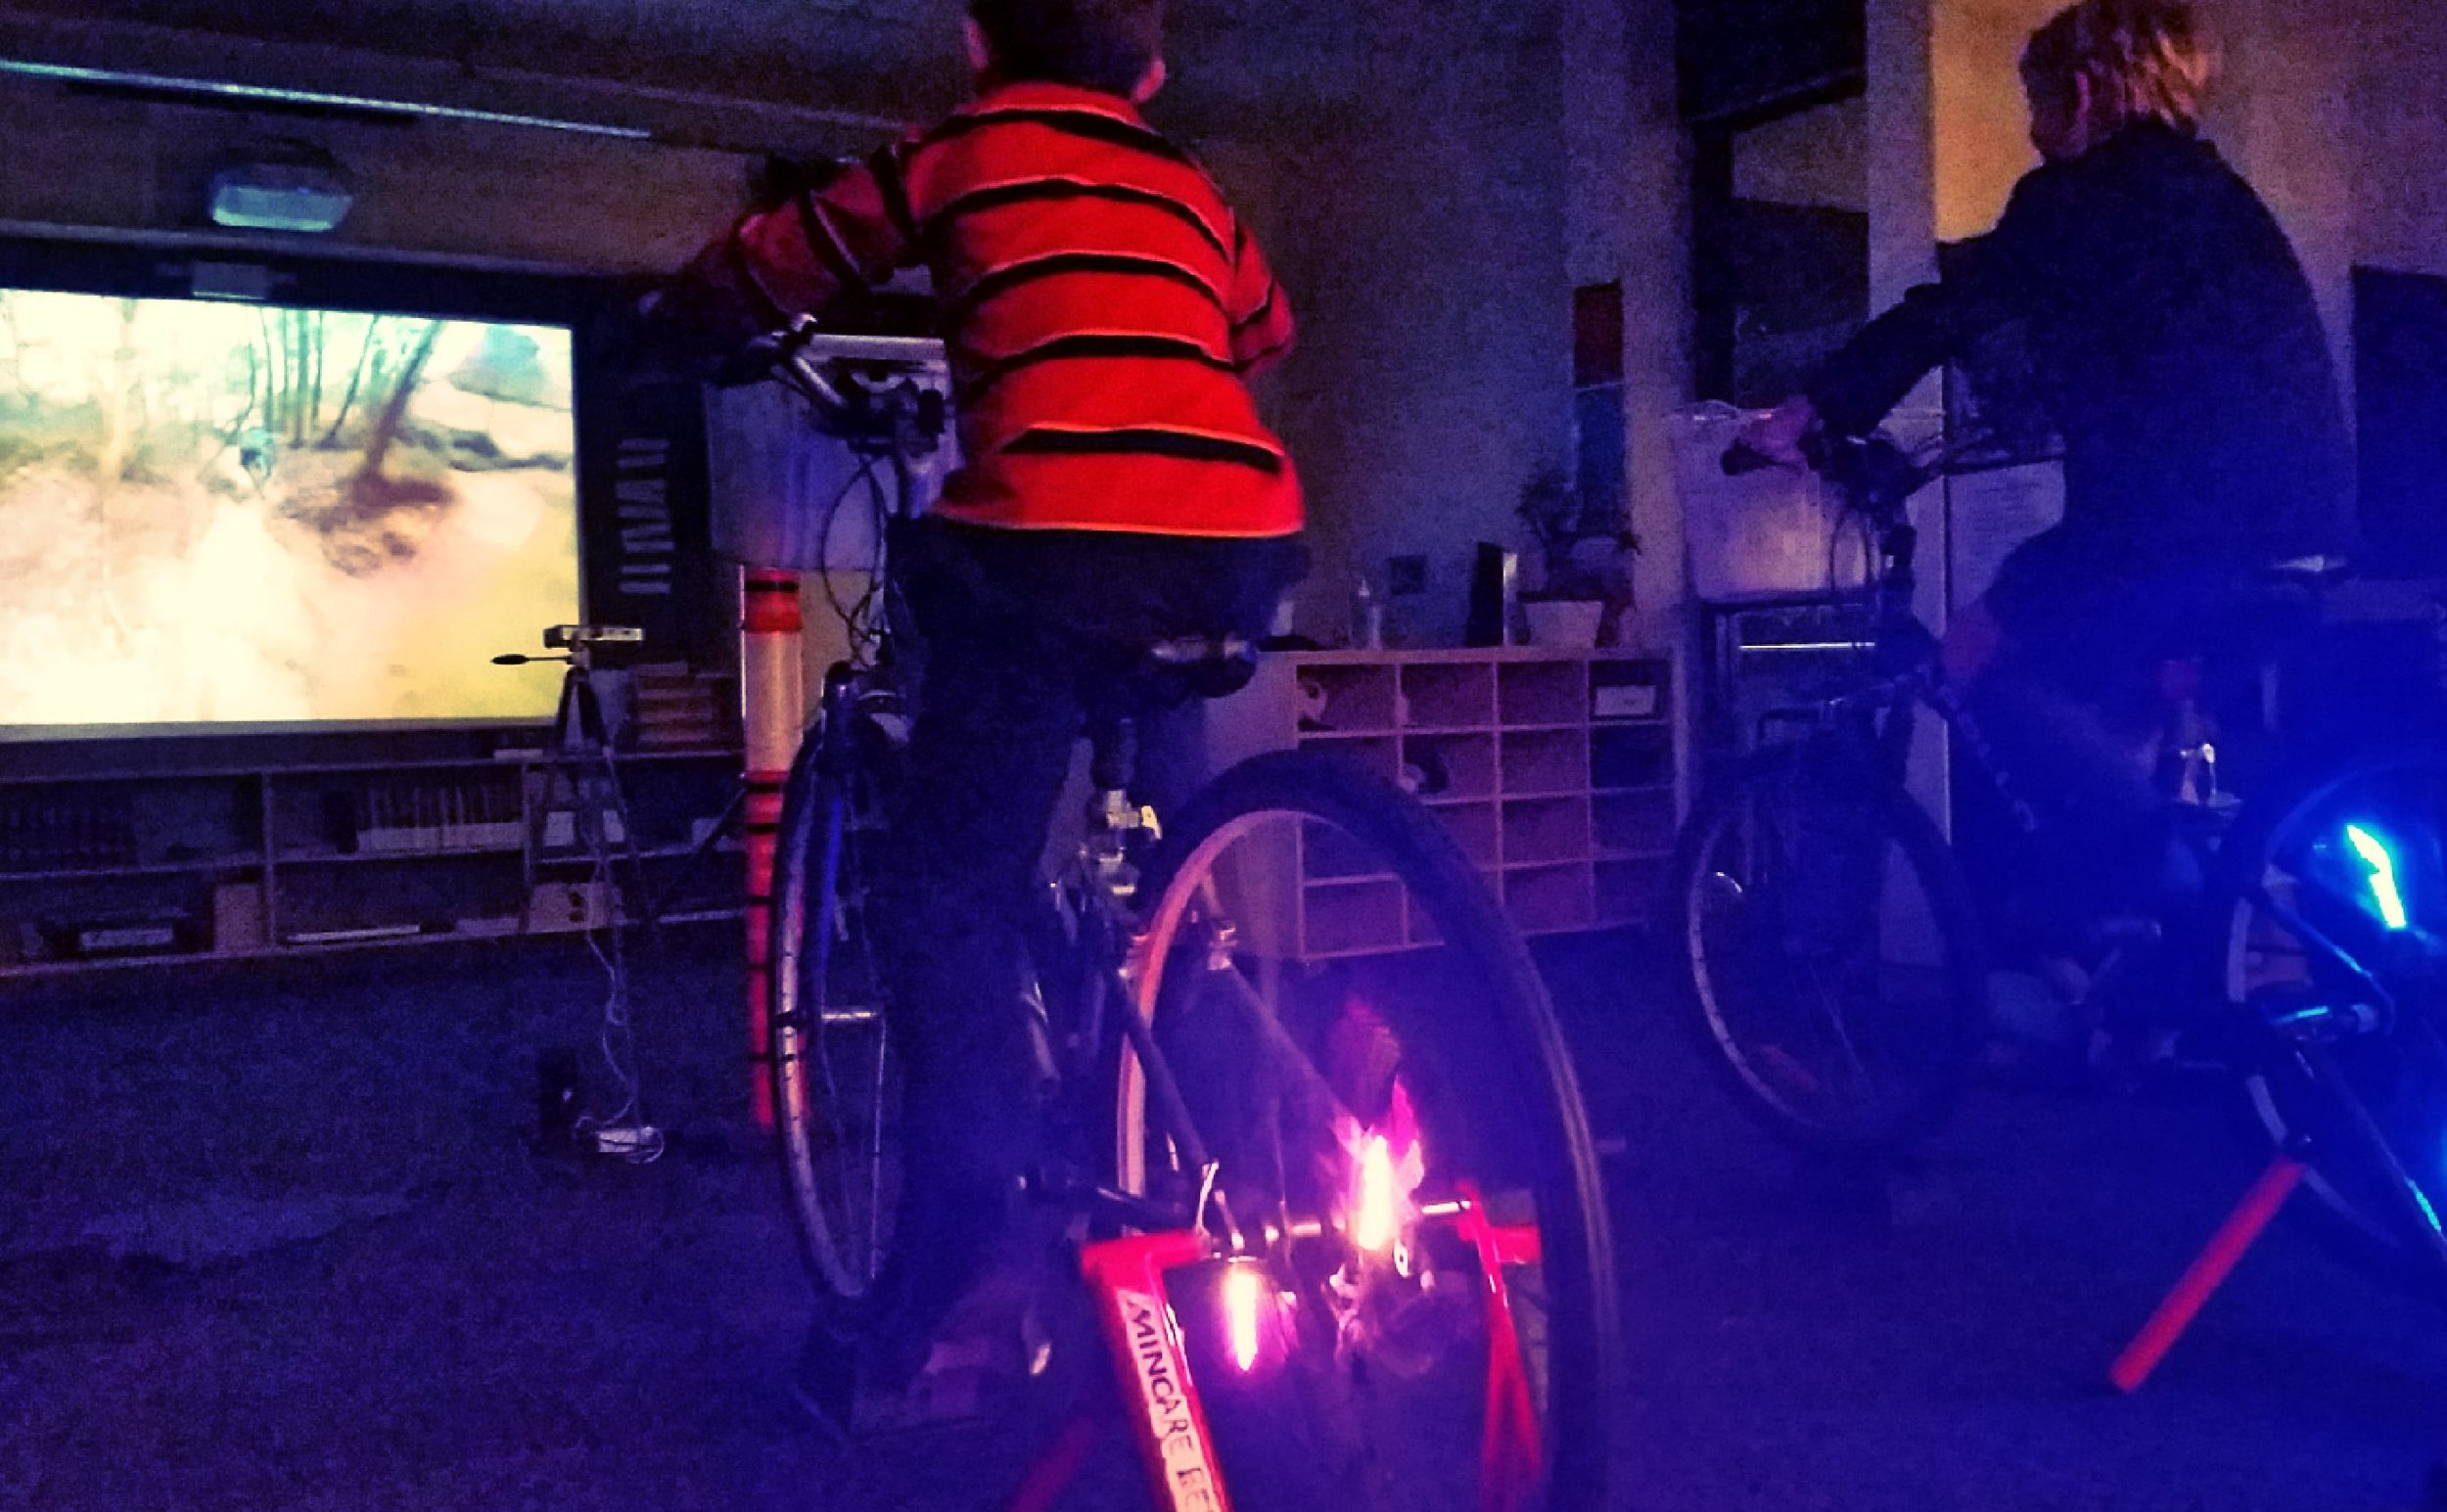 Bike powered VR mtn biking - Cyclists power the LED projector screening some of the best short mountain bike rides, filmed on helmet cameras